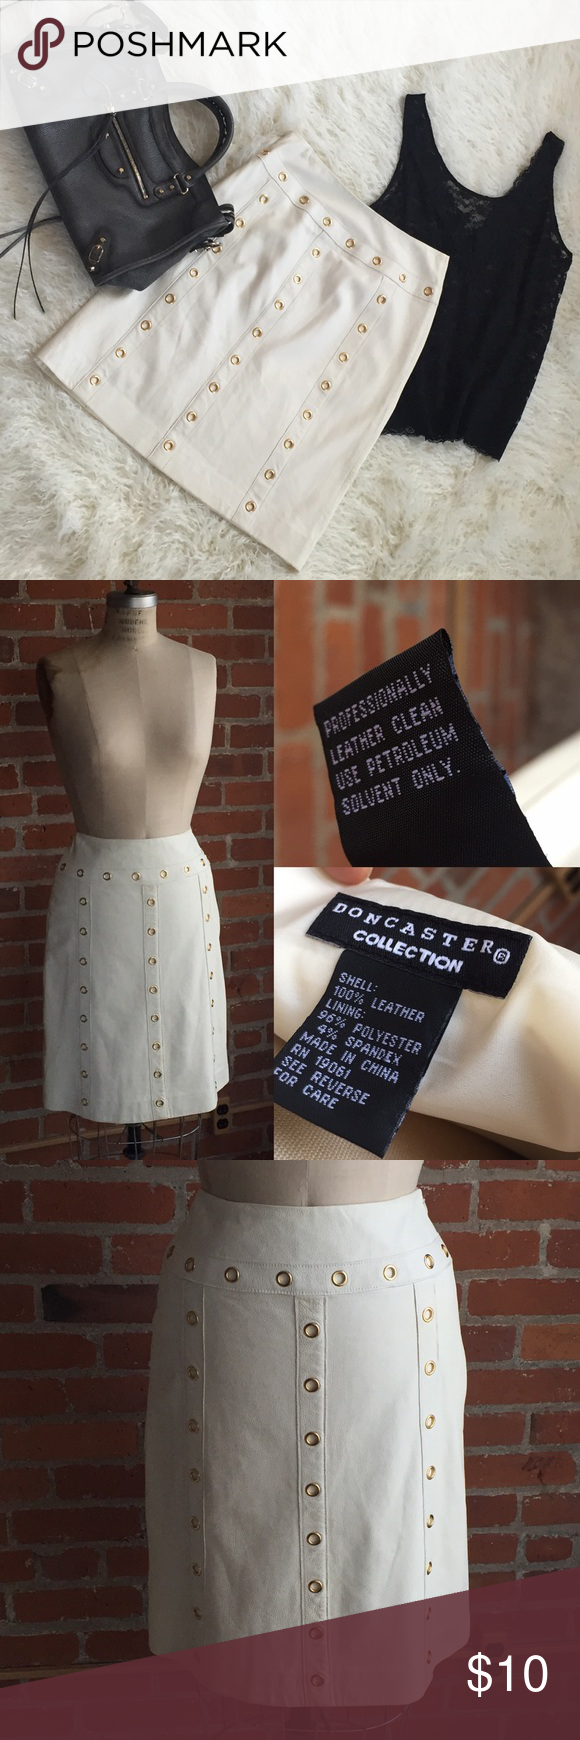 White Leather Doncaster Skirt 10 White leather